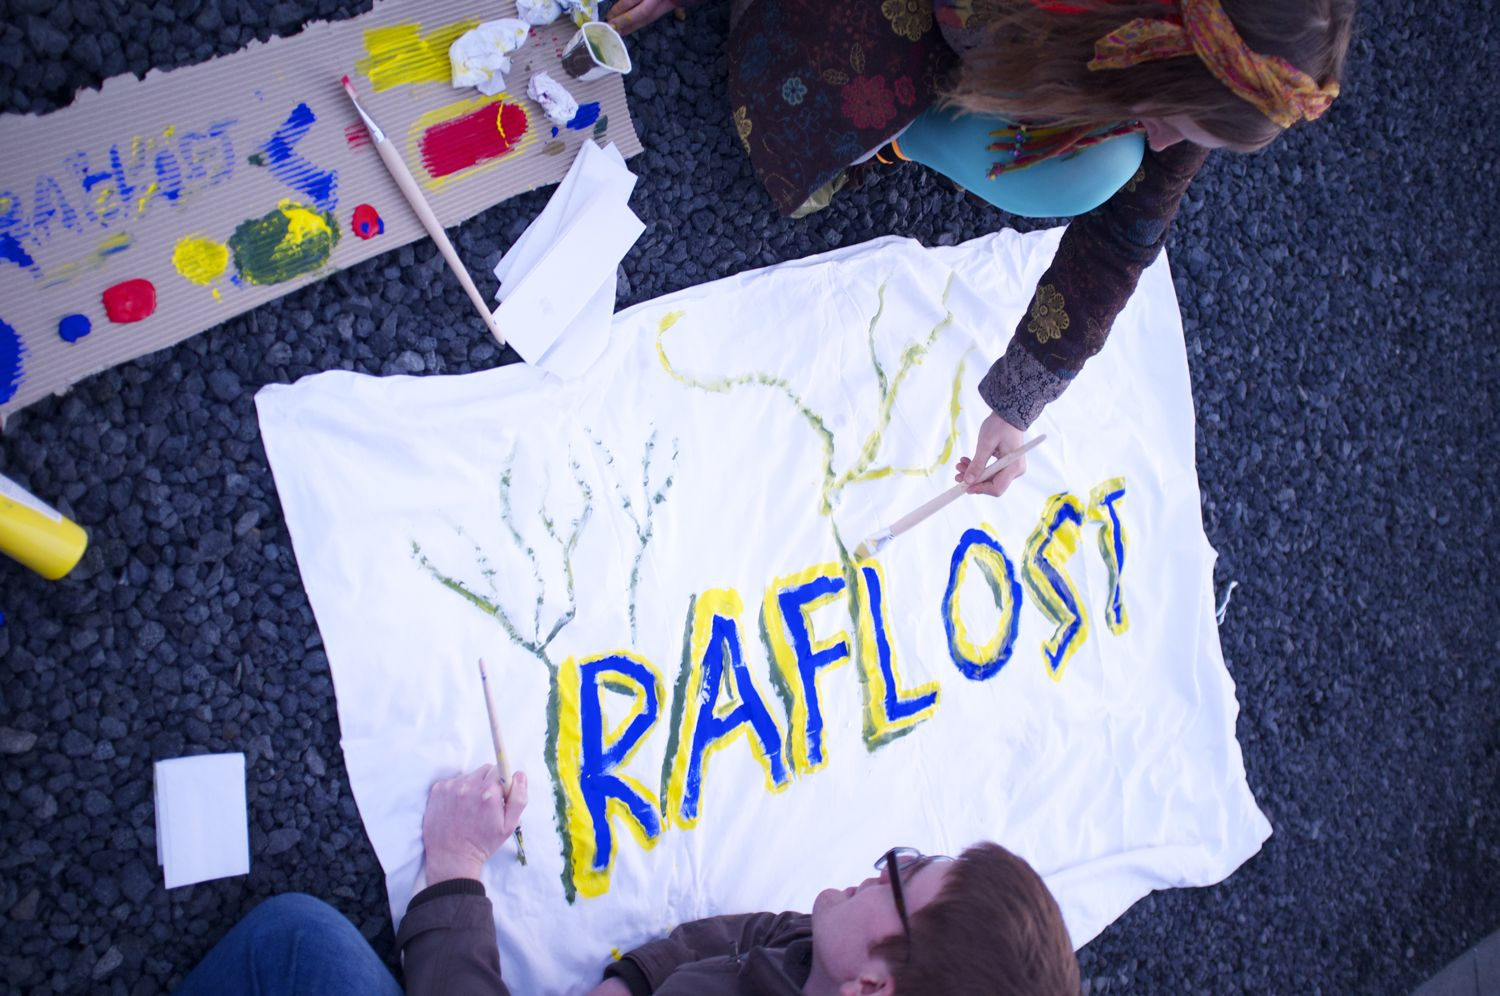 Making of the Raflost banner